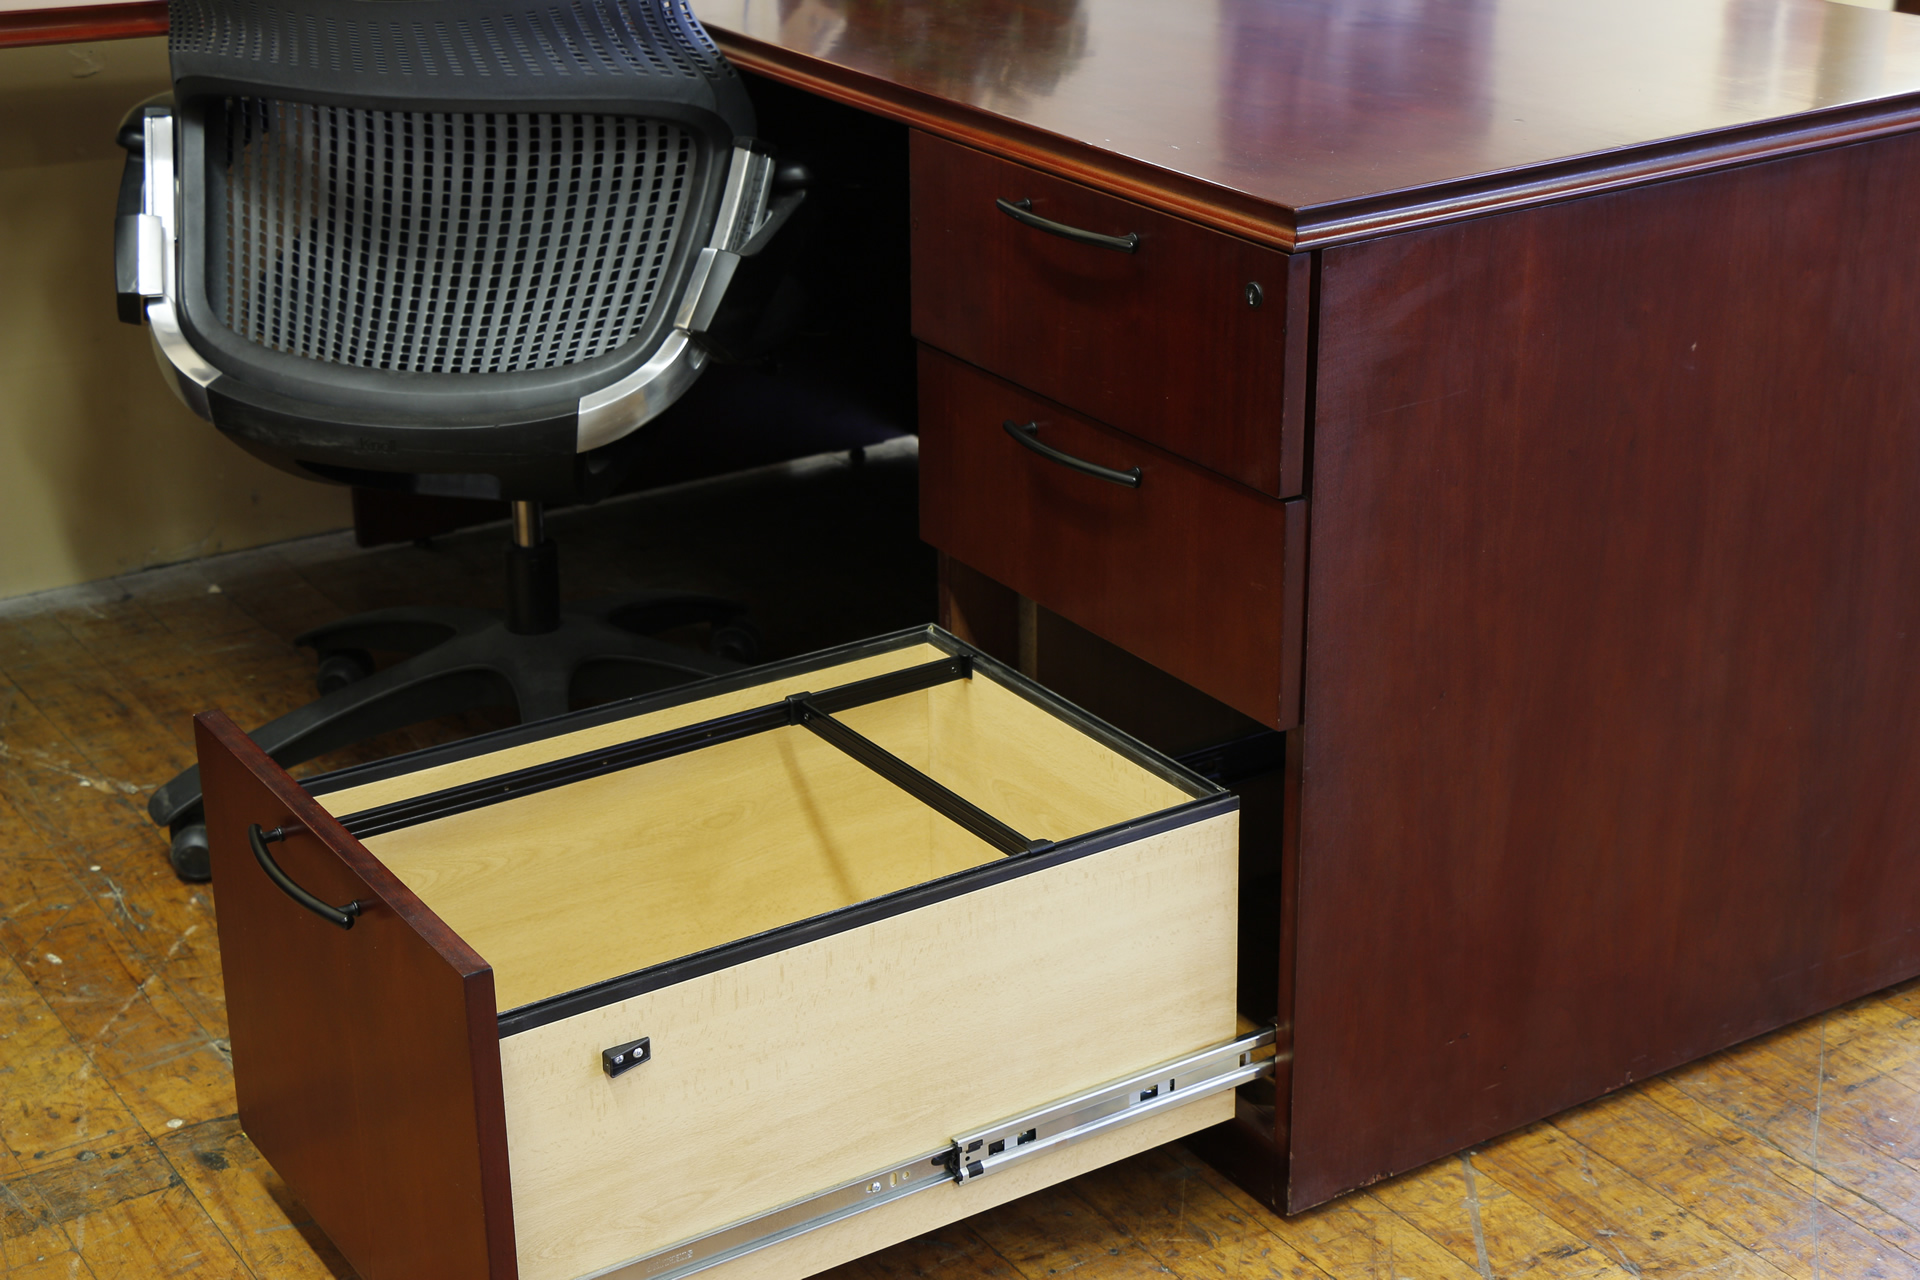 peartreeofficefurniture_peartreeofficefurniture_mg_4221.jpg